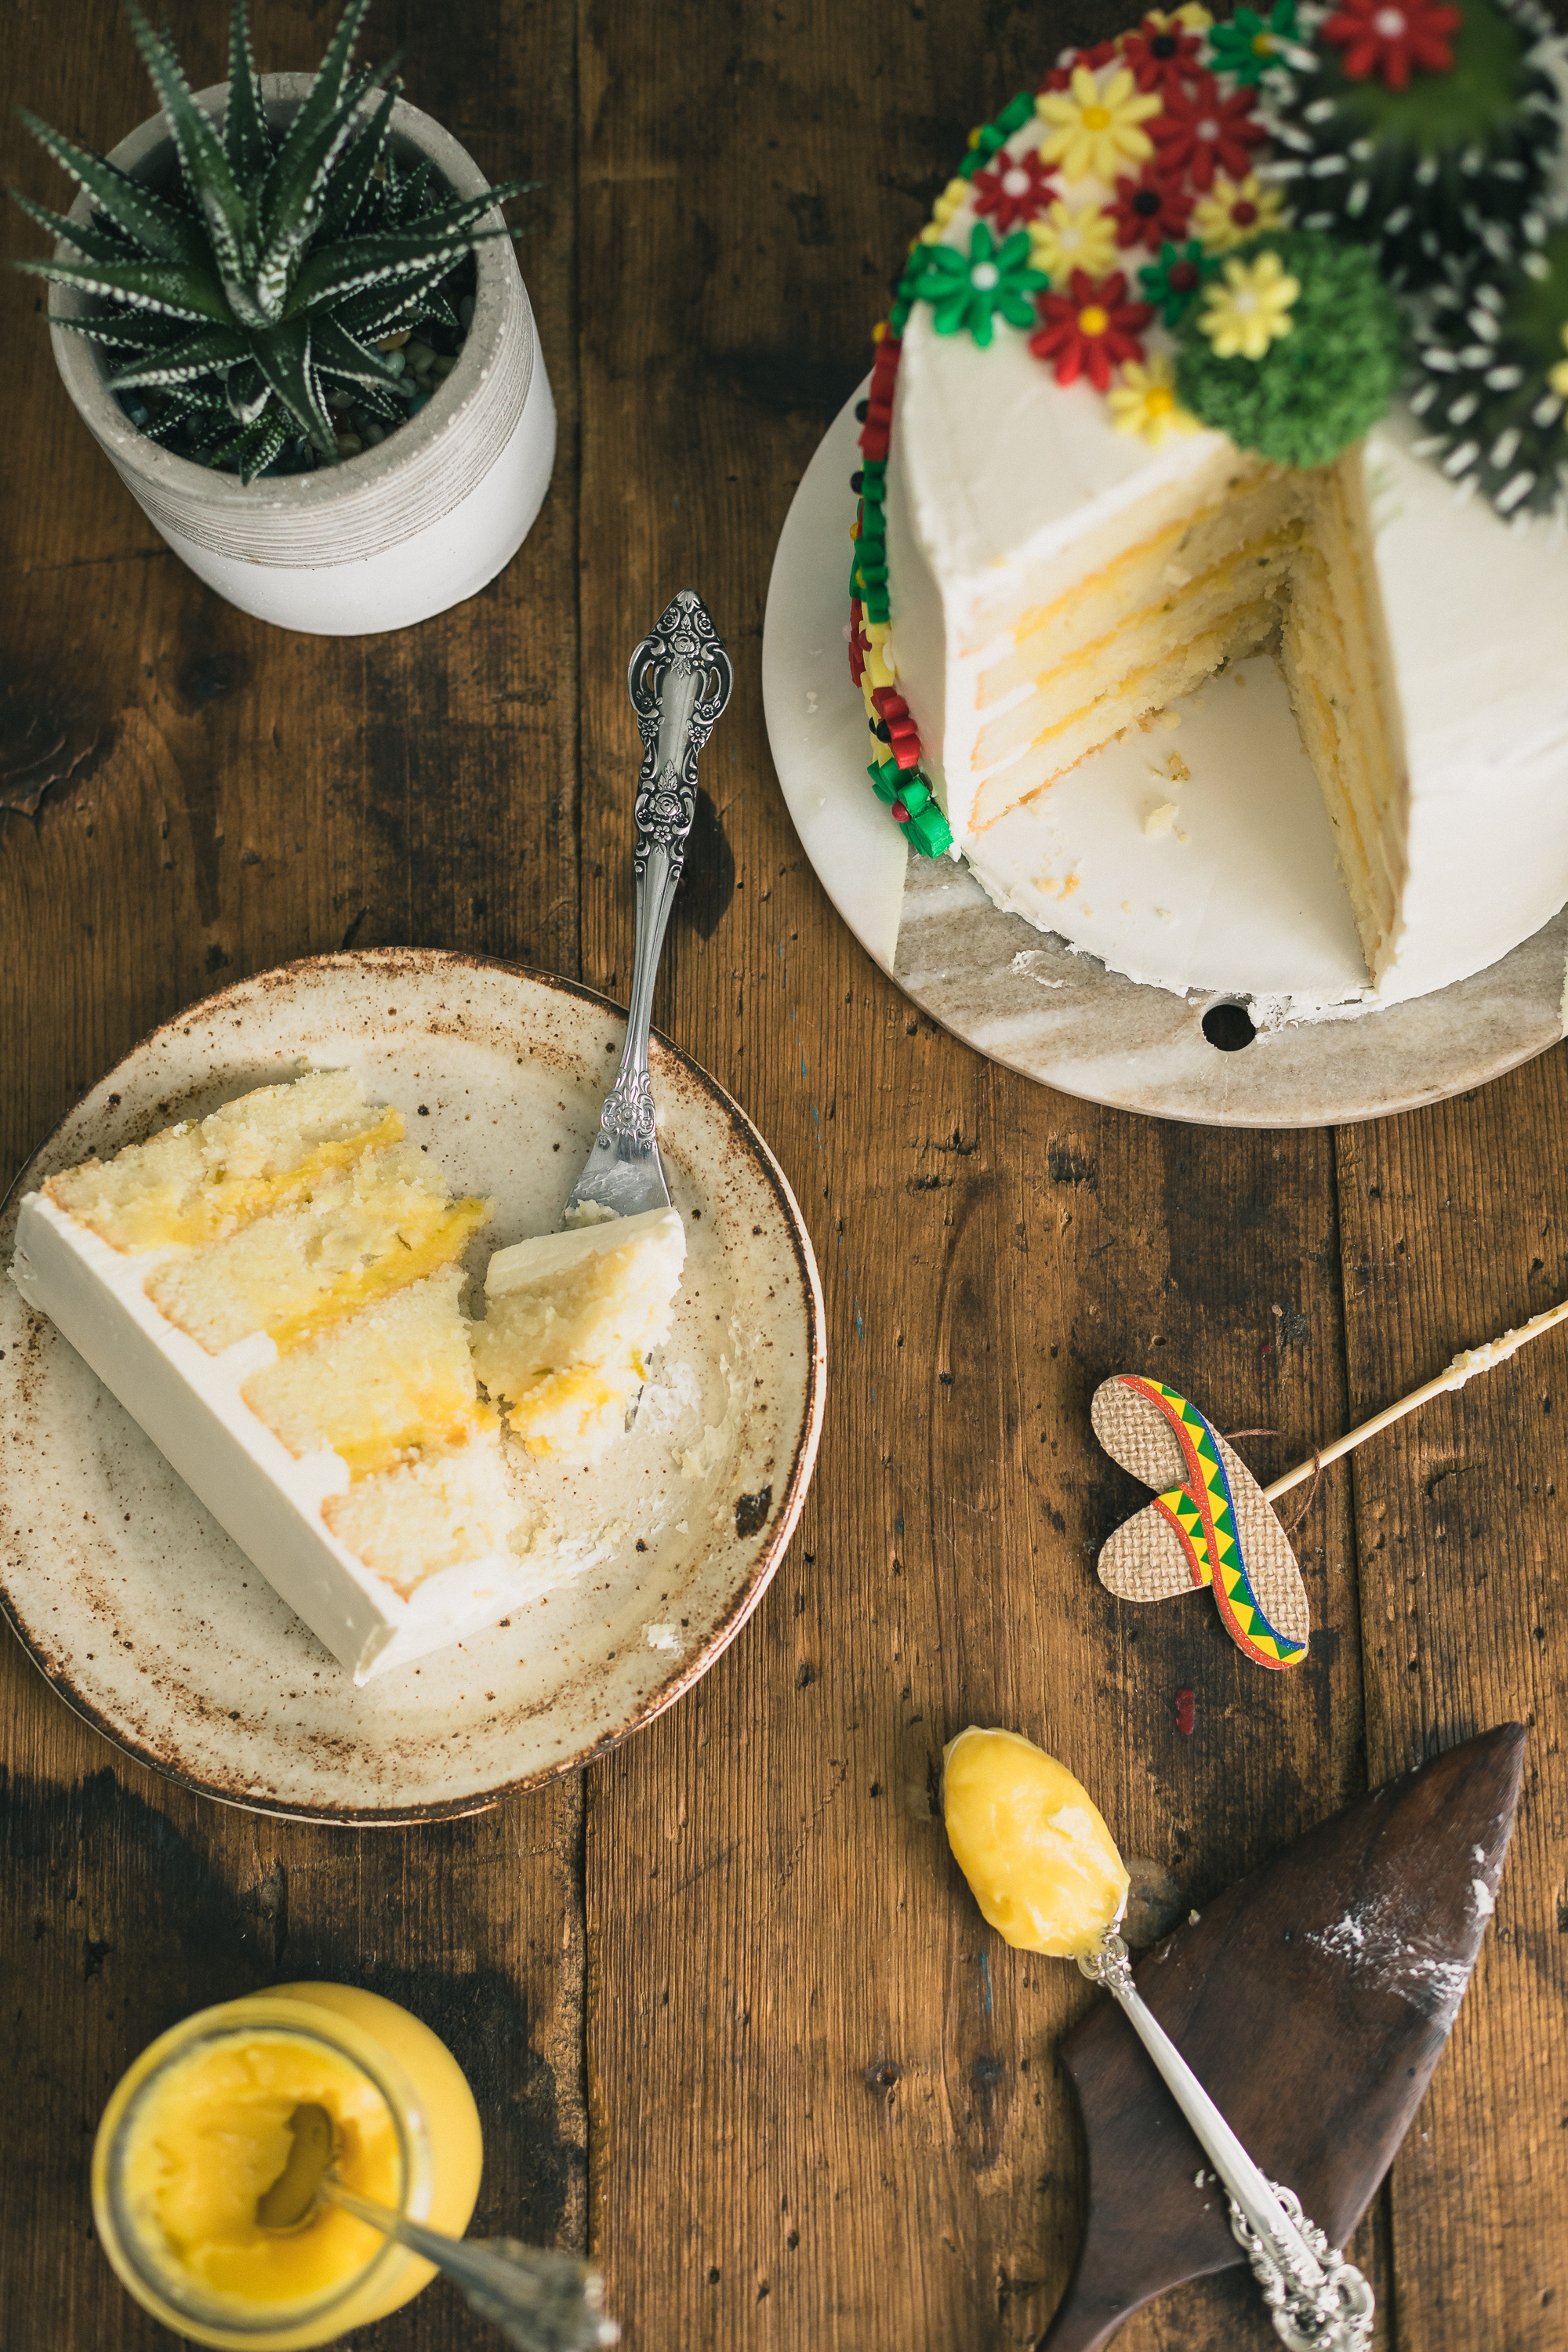 Margarita Cake with Salted Lime Frosting - This Margarita Cake with Salted Lime Frosting combines the elements of a light & moist cake with the sweet & salty flavors of a margarita. Perfect for all your Cinco de Mayo celebrations, Taco Tuesdays, summertime parties or any time a Margarita craving strikes. Click for RECIPE.